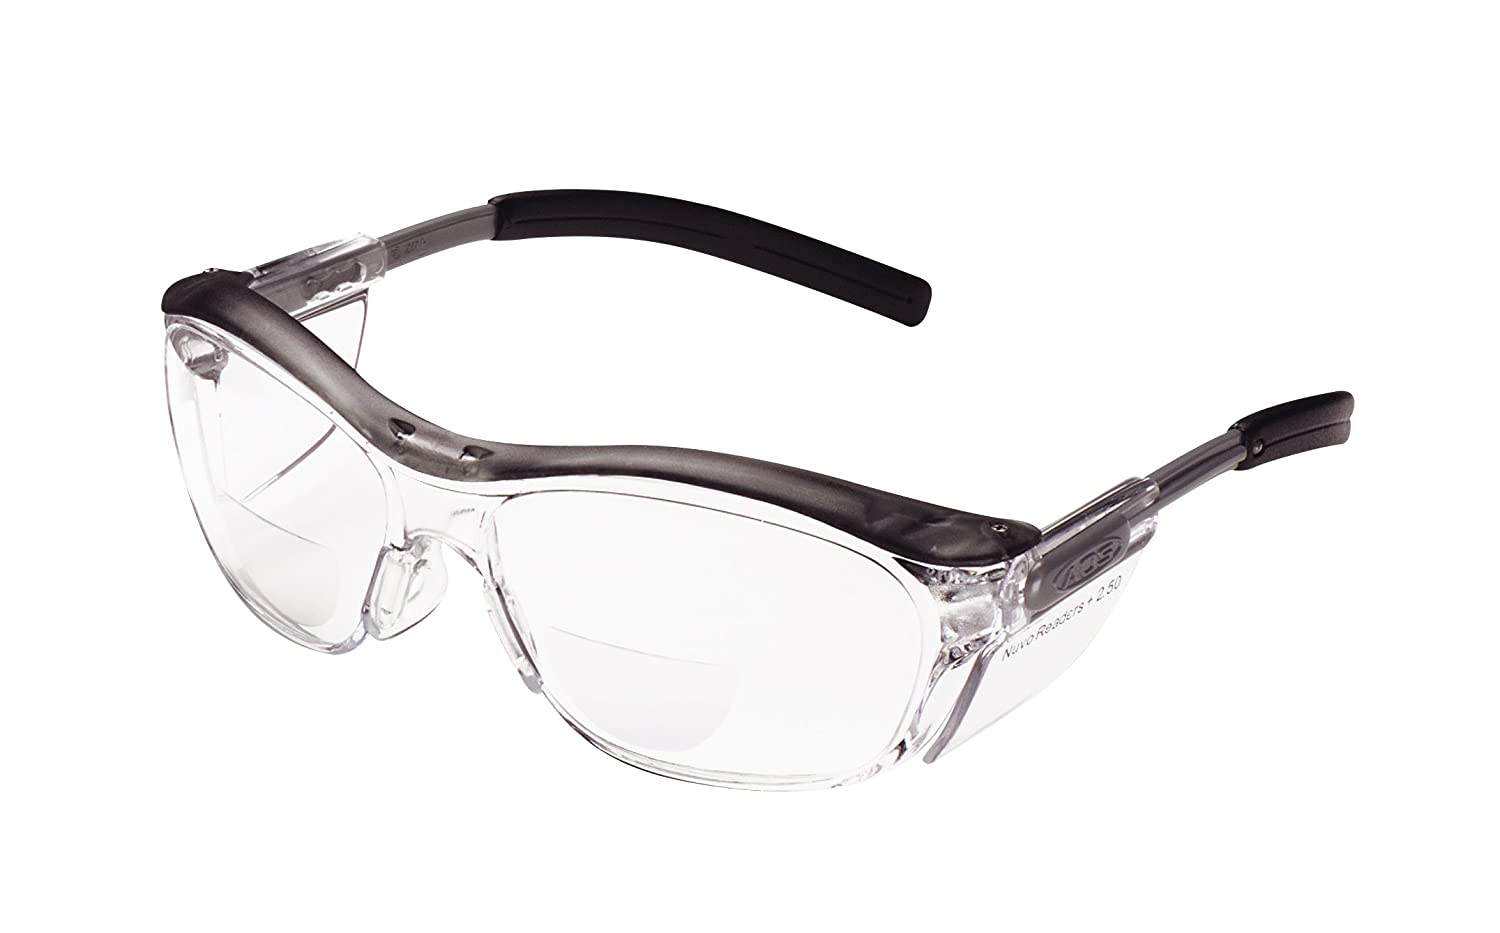 3M Nuvo Reader Protective Eyewear, 11436-00000-20 Clear Lens, Gray Frame, +2.5 Diopter(Pack of 1)